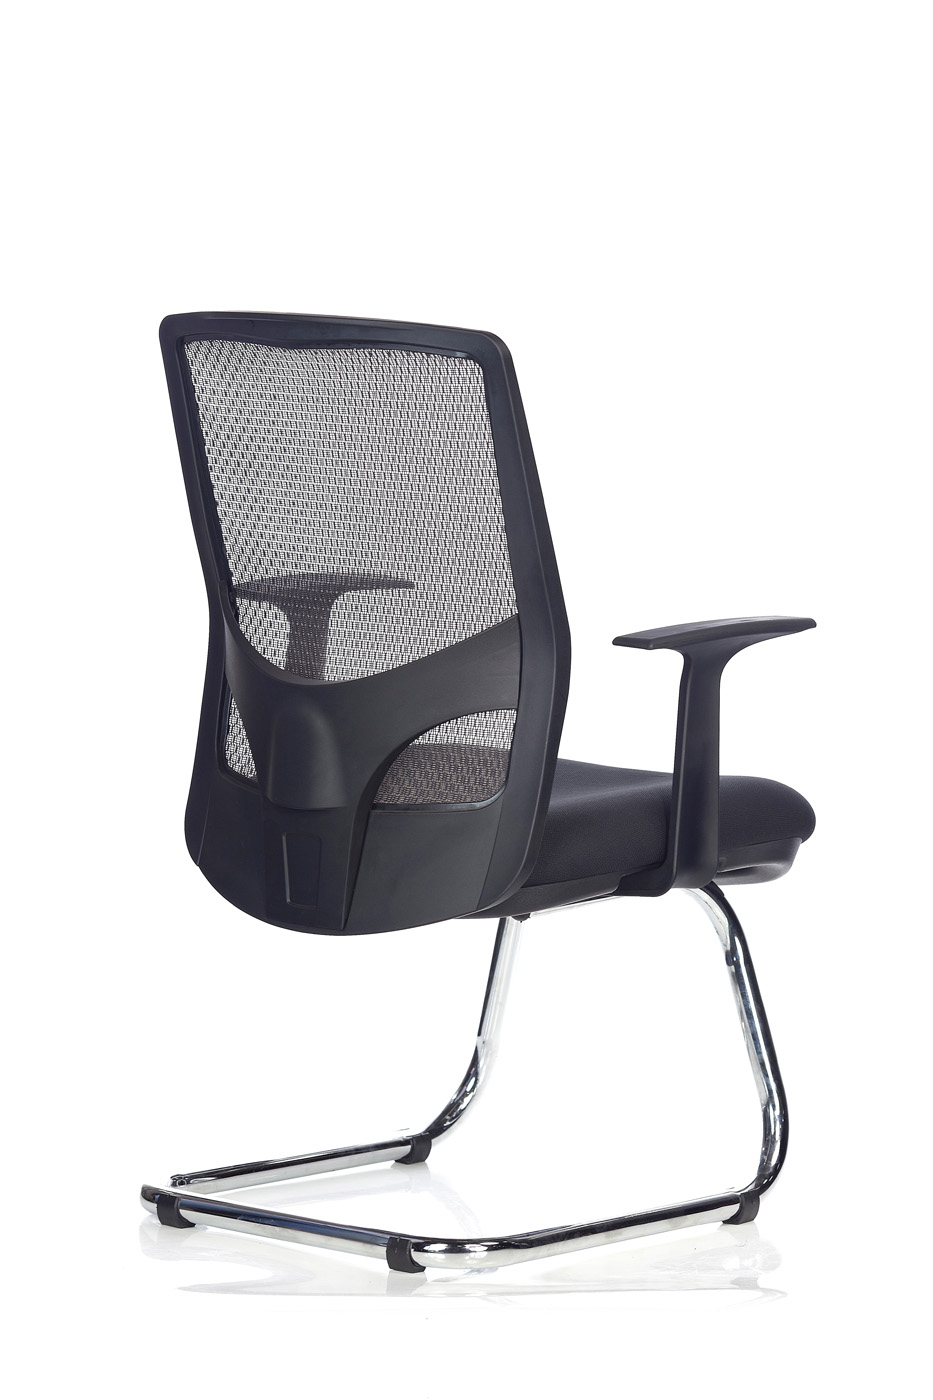 S-96GD office chair